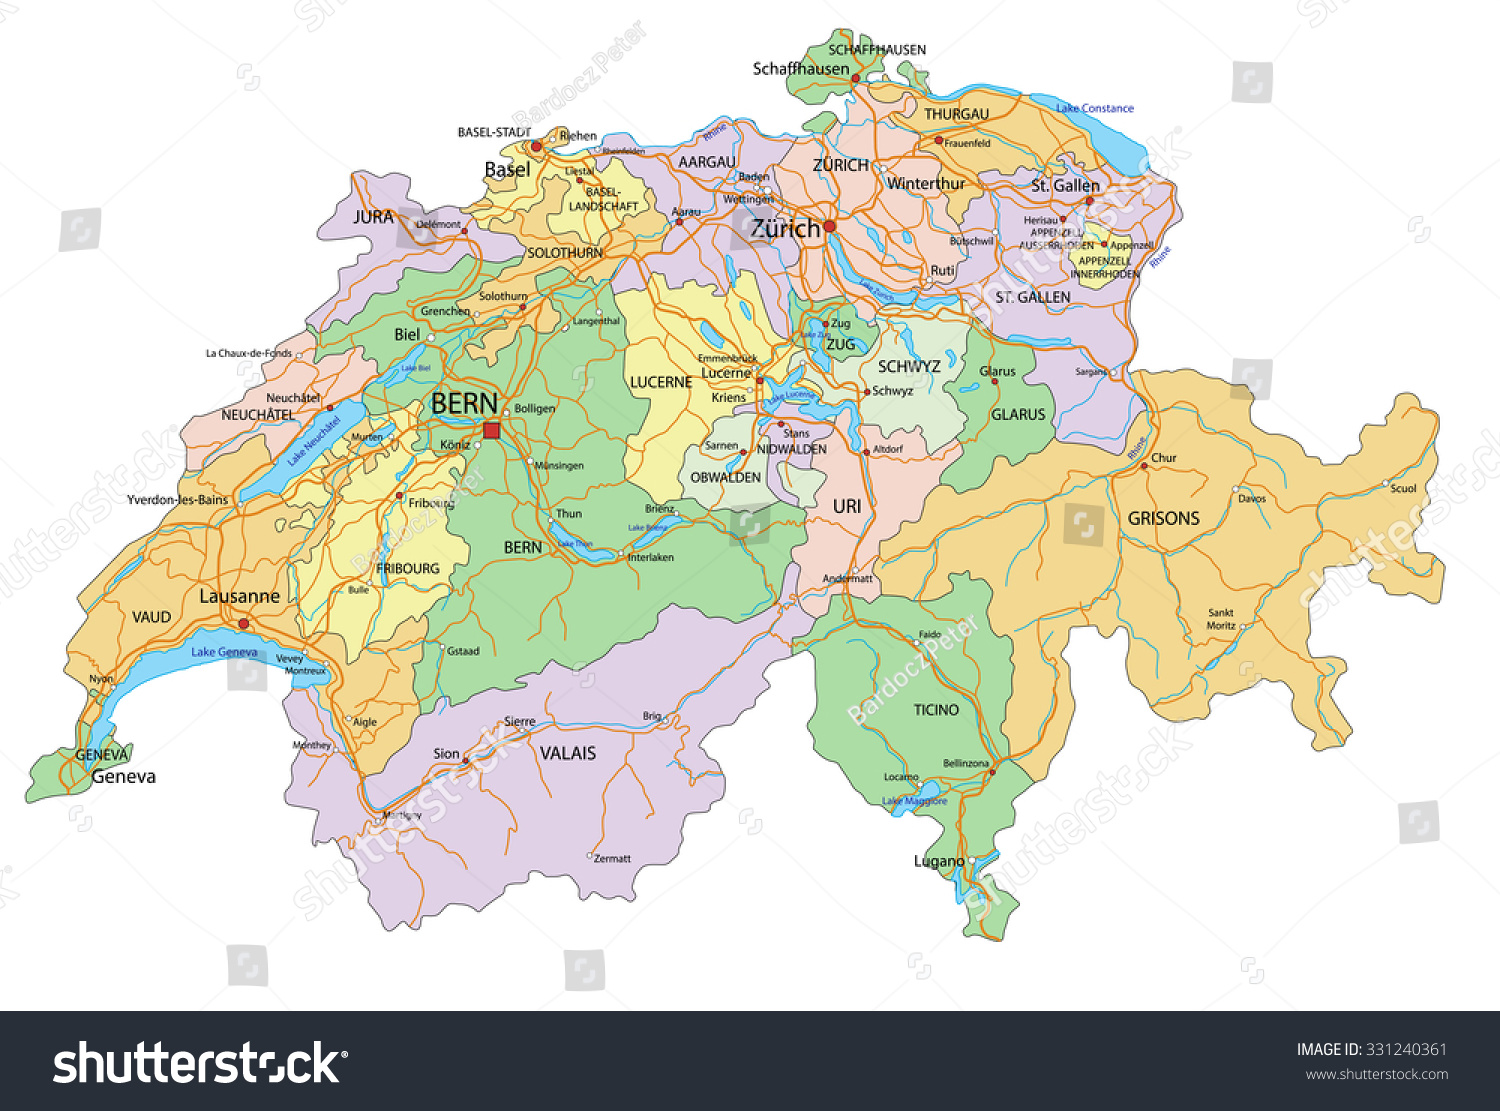 Switzerland Highly Detailed Editable Political Map Stock Vector Royalty Free 331240361